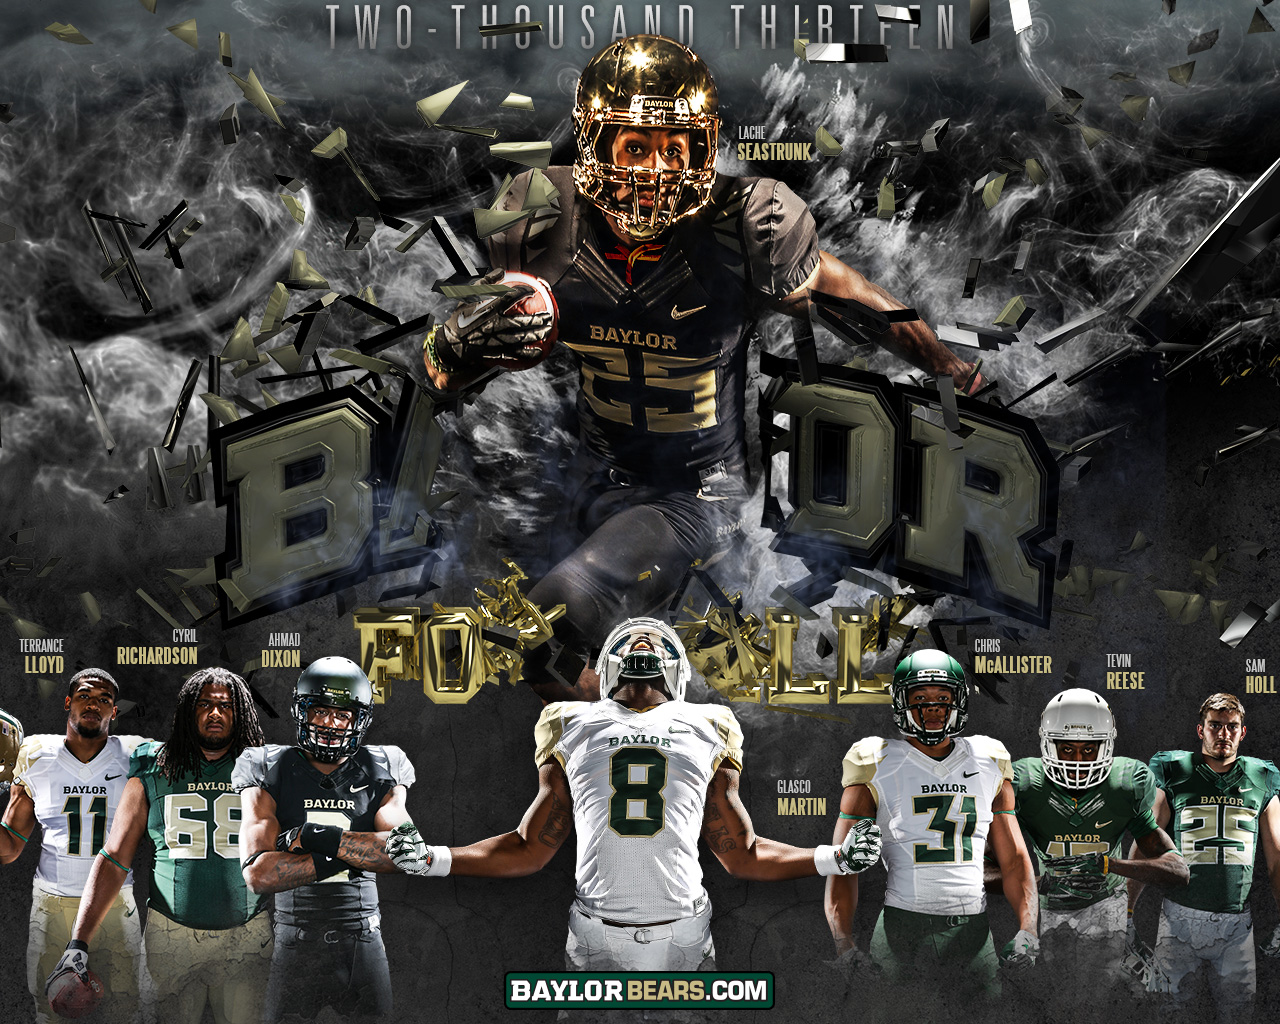 Baylor Bears Wallpaper Collection Sports Geekery 1280x1024